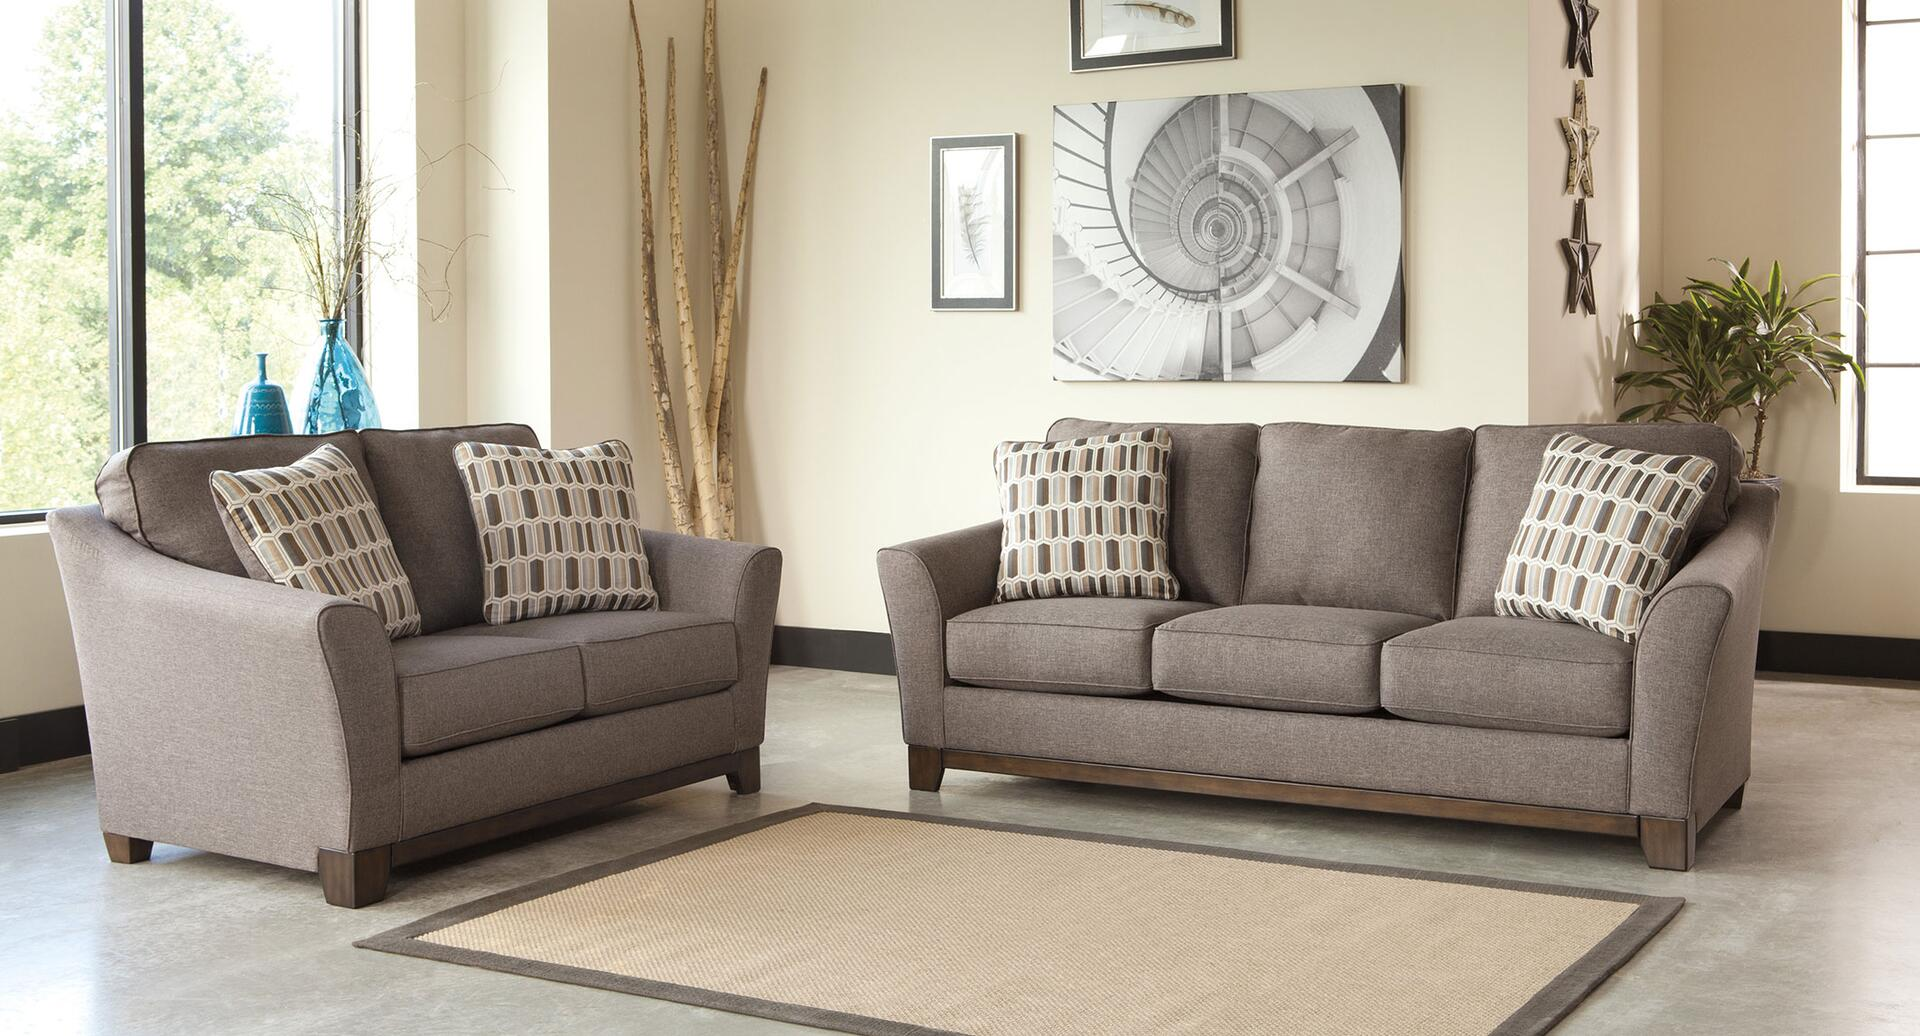 Benchcraft 4380438set2pc janley living room sets for Living room of satoshi tax